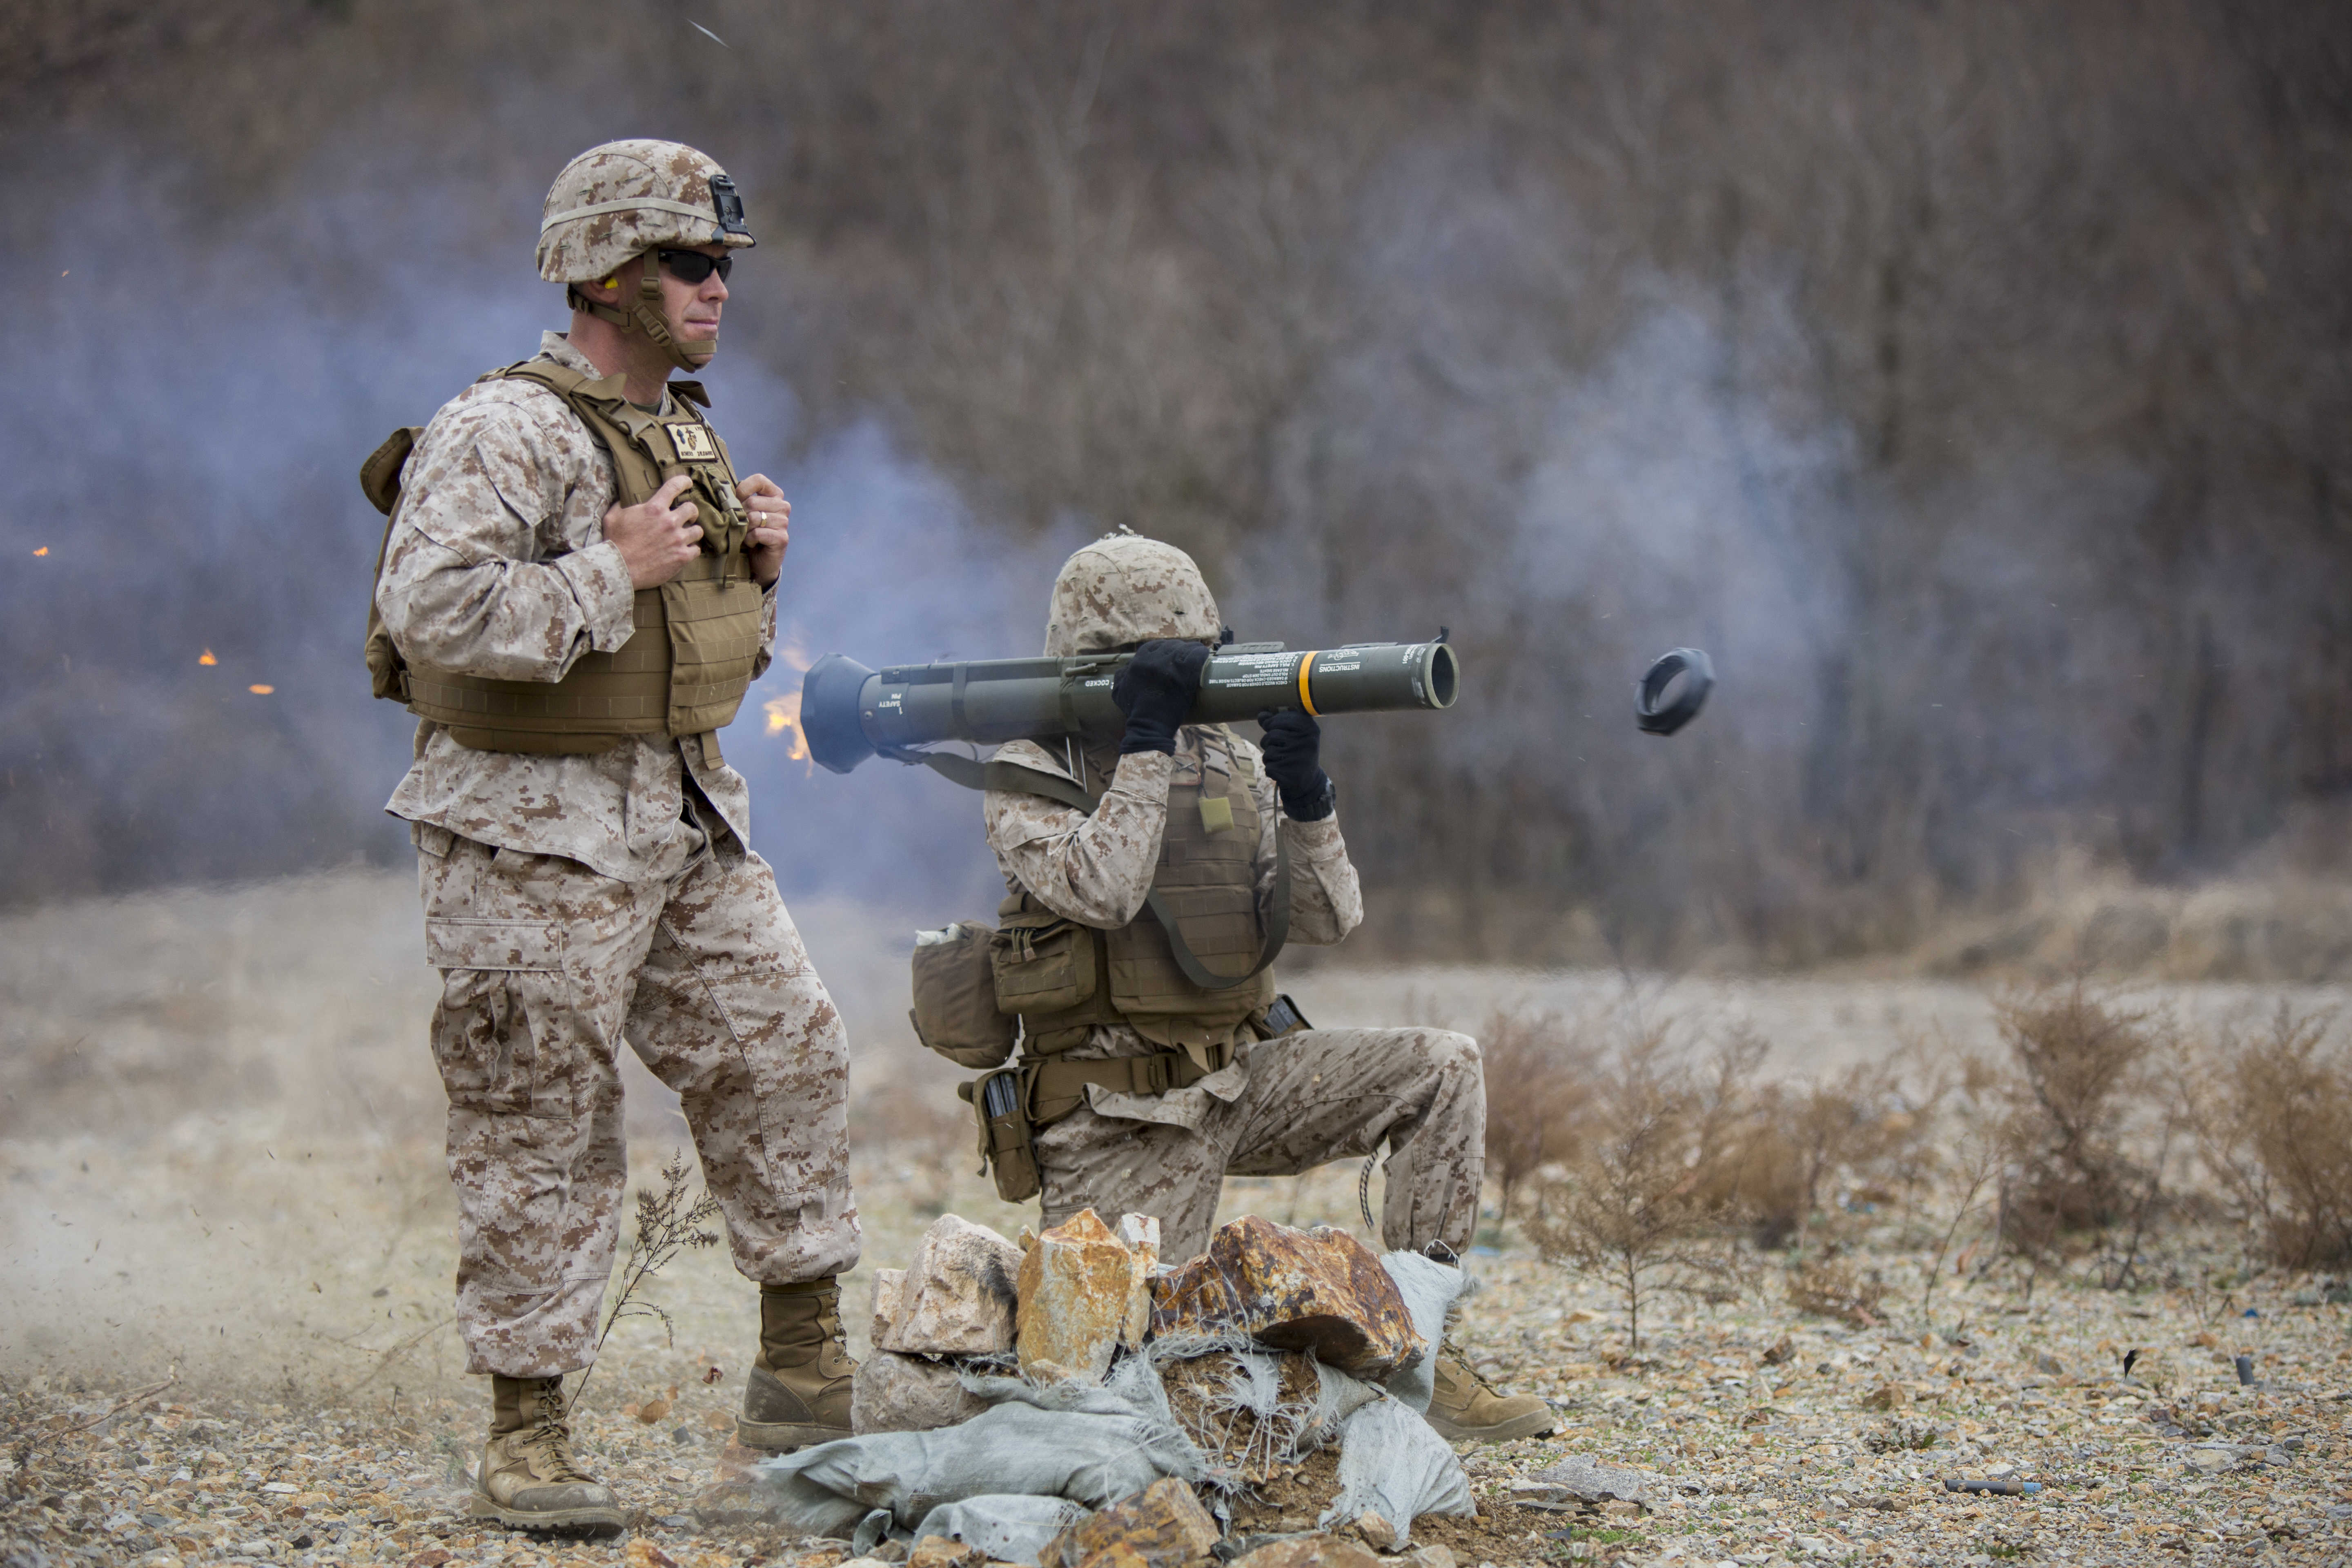 U.S. Marine Corps Cpl. Lloyd Burton the III, Field Artillery Cannoneer, with A Battery, 1st Battalion 12th Marines, 3D Marine Division, fires an M136E1 AT4-CS confined space light anti-armor weapon at a live fire training event during Exercise Ssang Yong 14 at Suesongri, South Korea, March 26, 2014. Exercise Ssang Yong 14 is conducted annually in the Republic of Korea (ROK) to enhance interoperablility between U.S. and ROK forces by performing a full spectrum of amphibious operations while showcasing sea-based power projection in the Pacific. (U.S. Marine Corps Photo by Lance Cpl Tyler S. Dietrich/ Released)